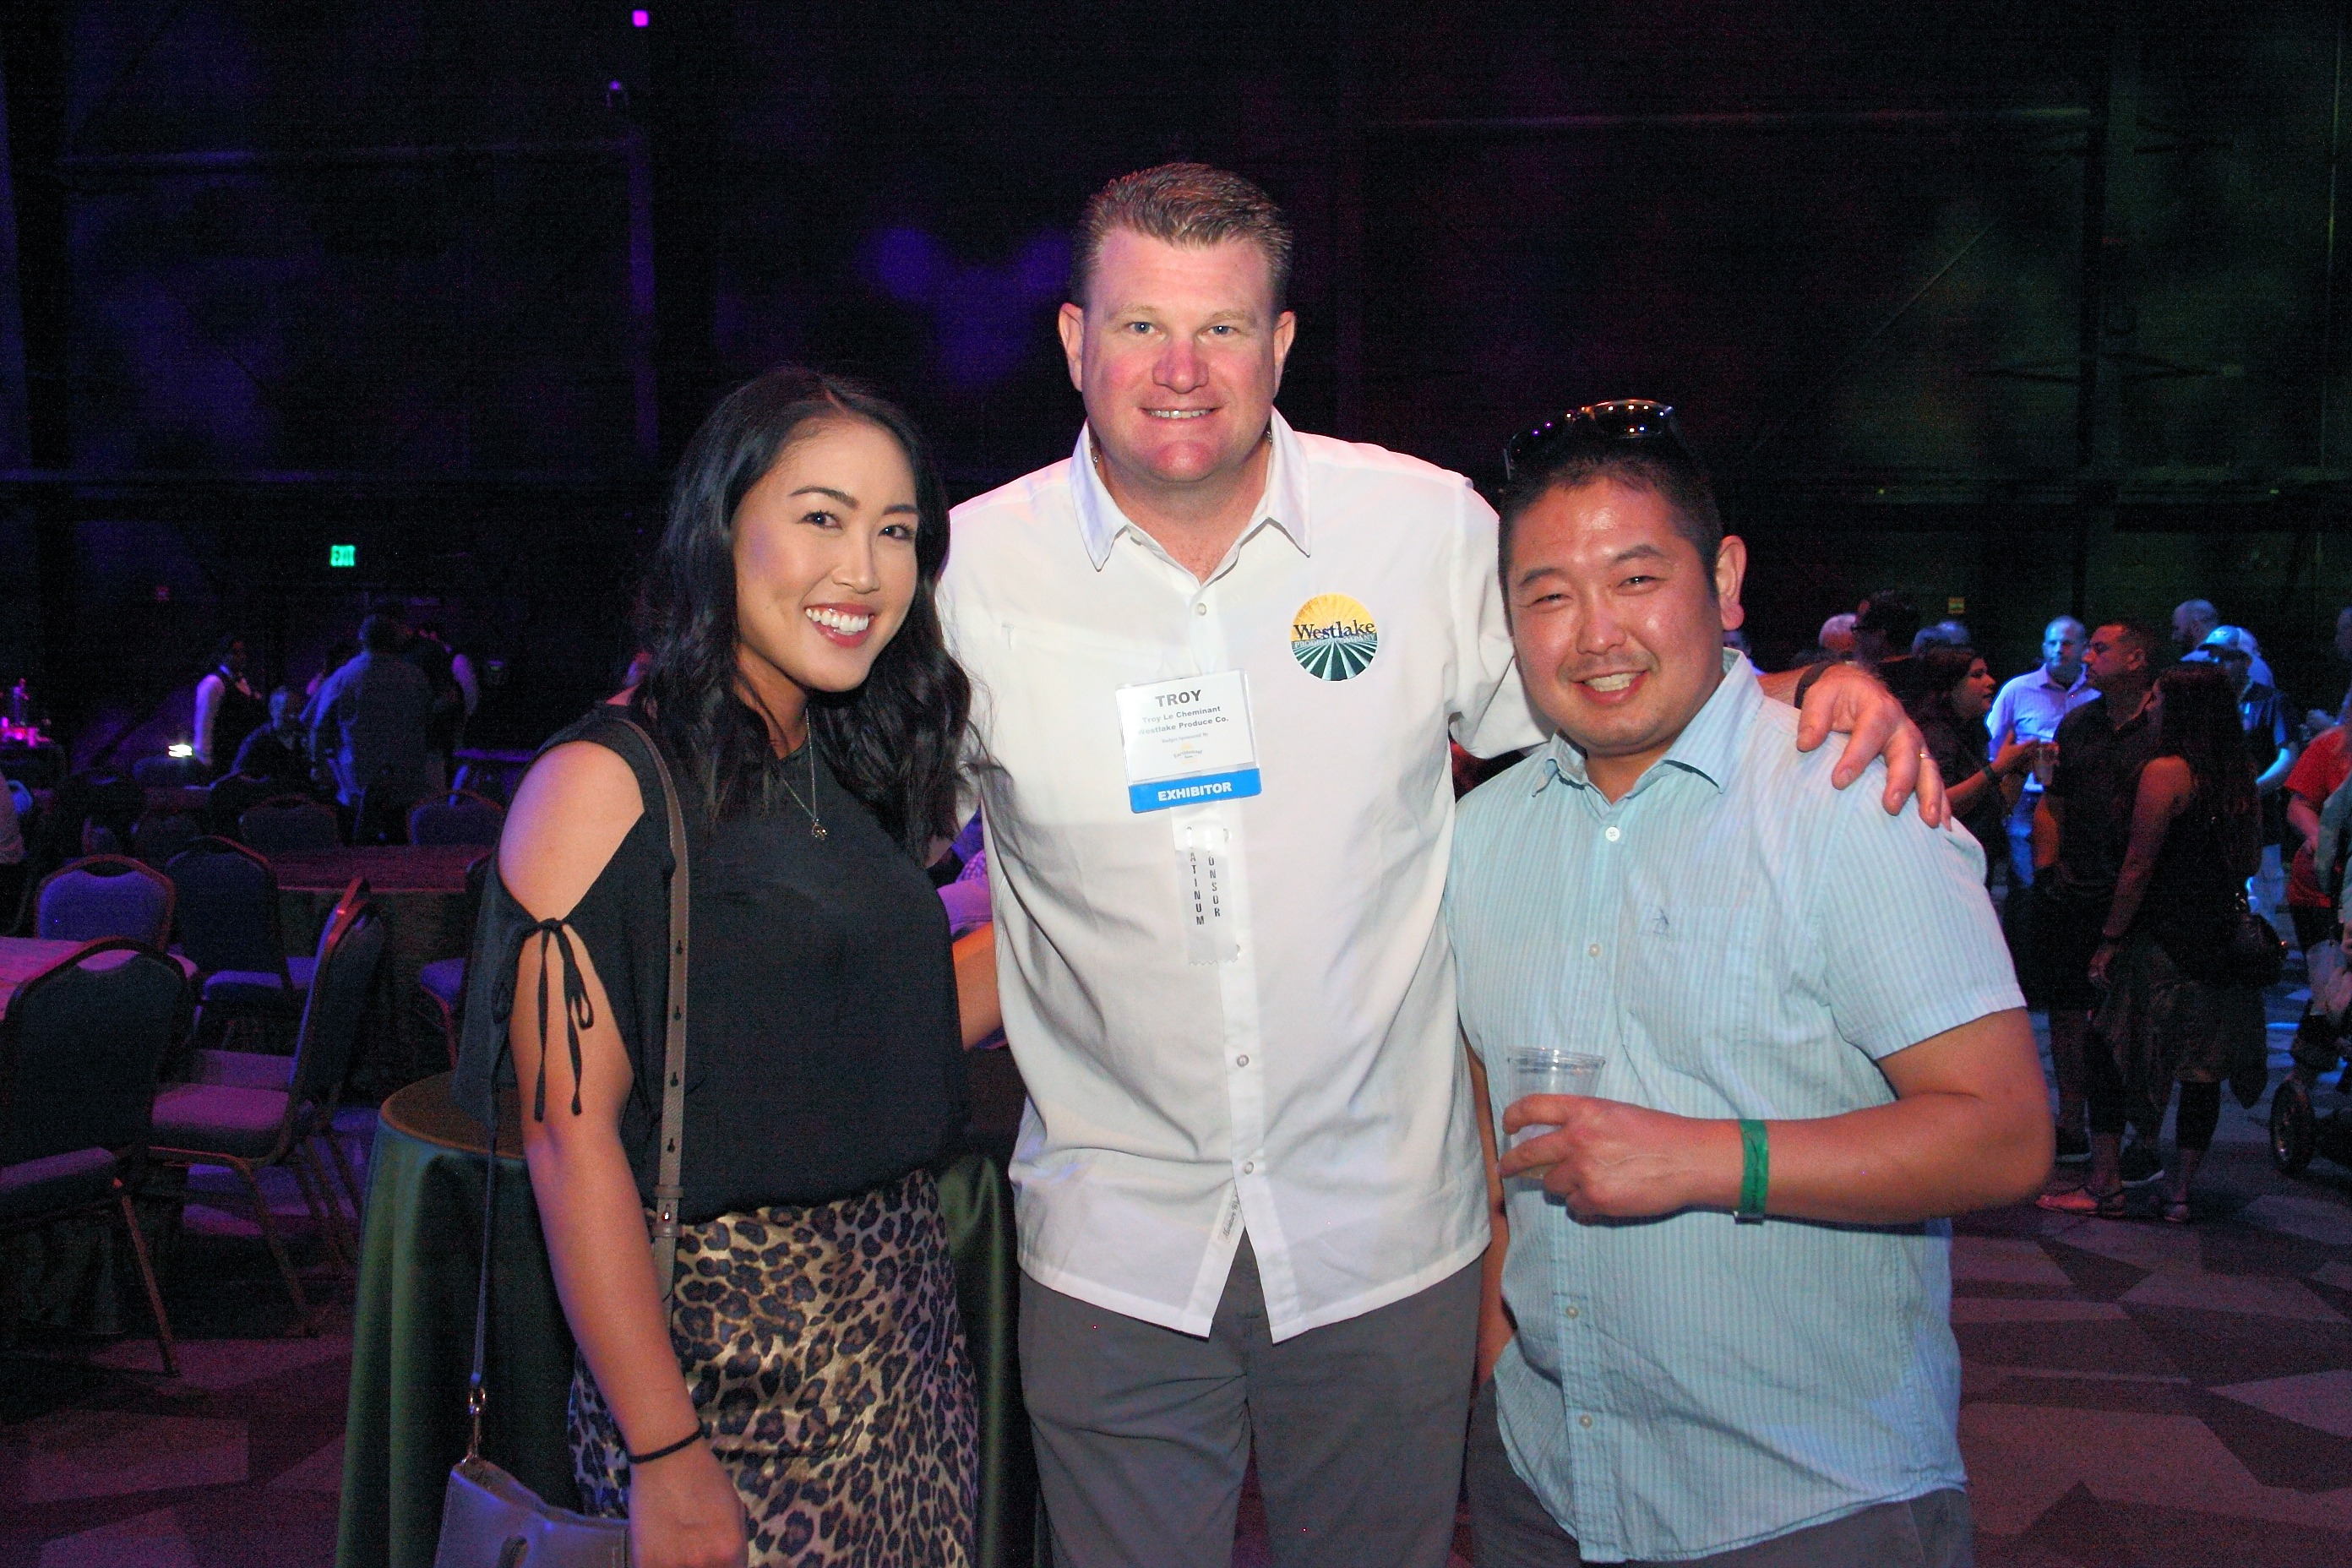 Troy LeCheminant from Westlake Produce Company (center) with Megan Ichimoto and Garrett Nishimori from San Miguel Produce